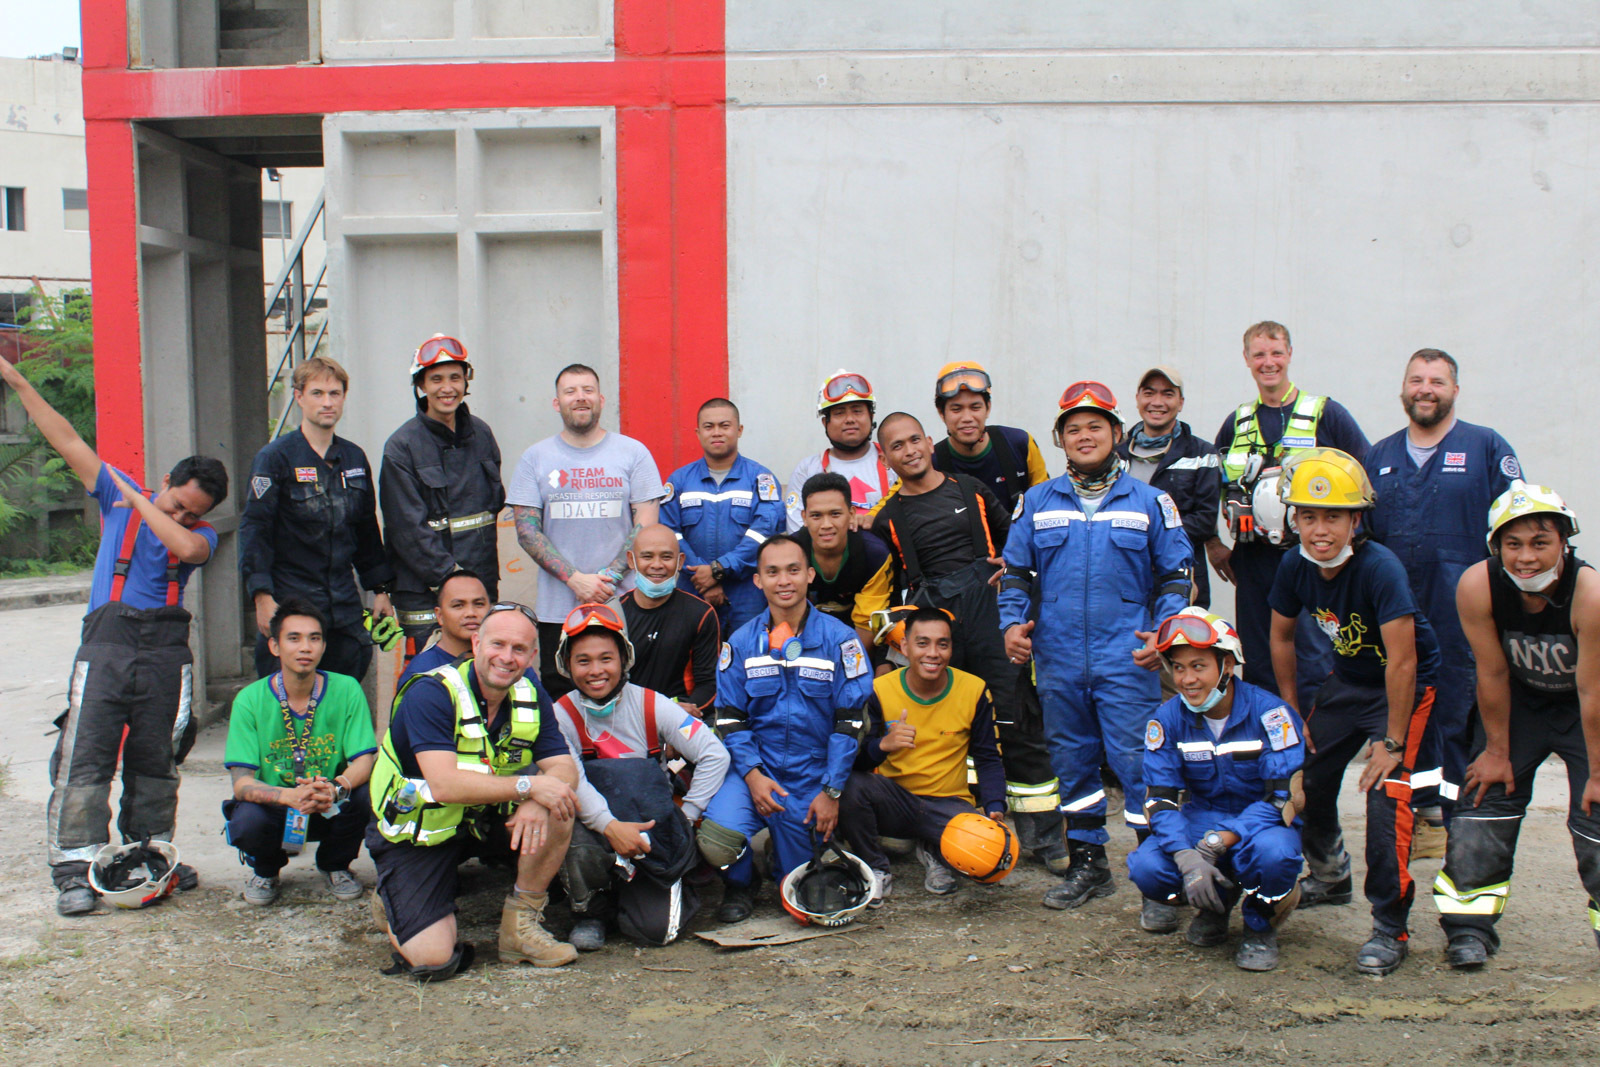 The Serve On instructors with the local responsders.